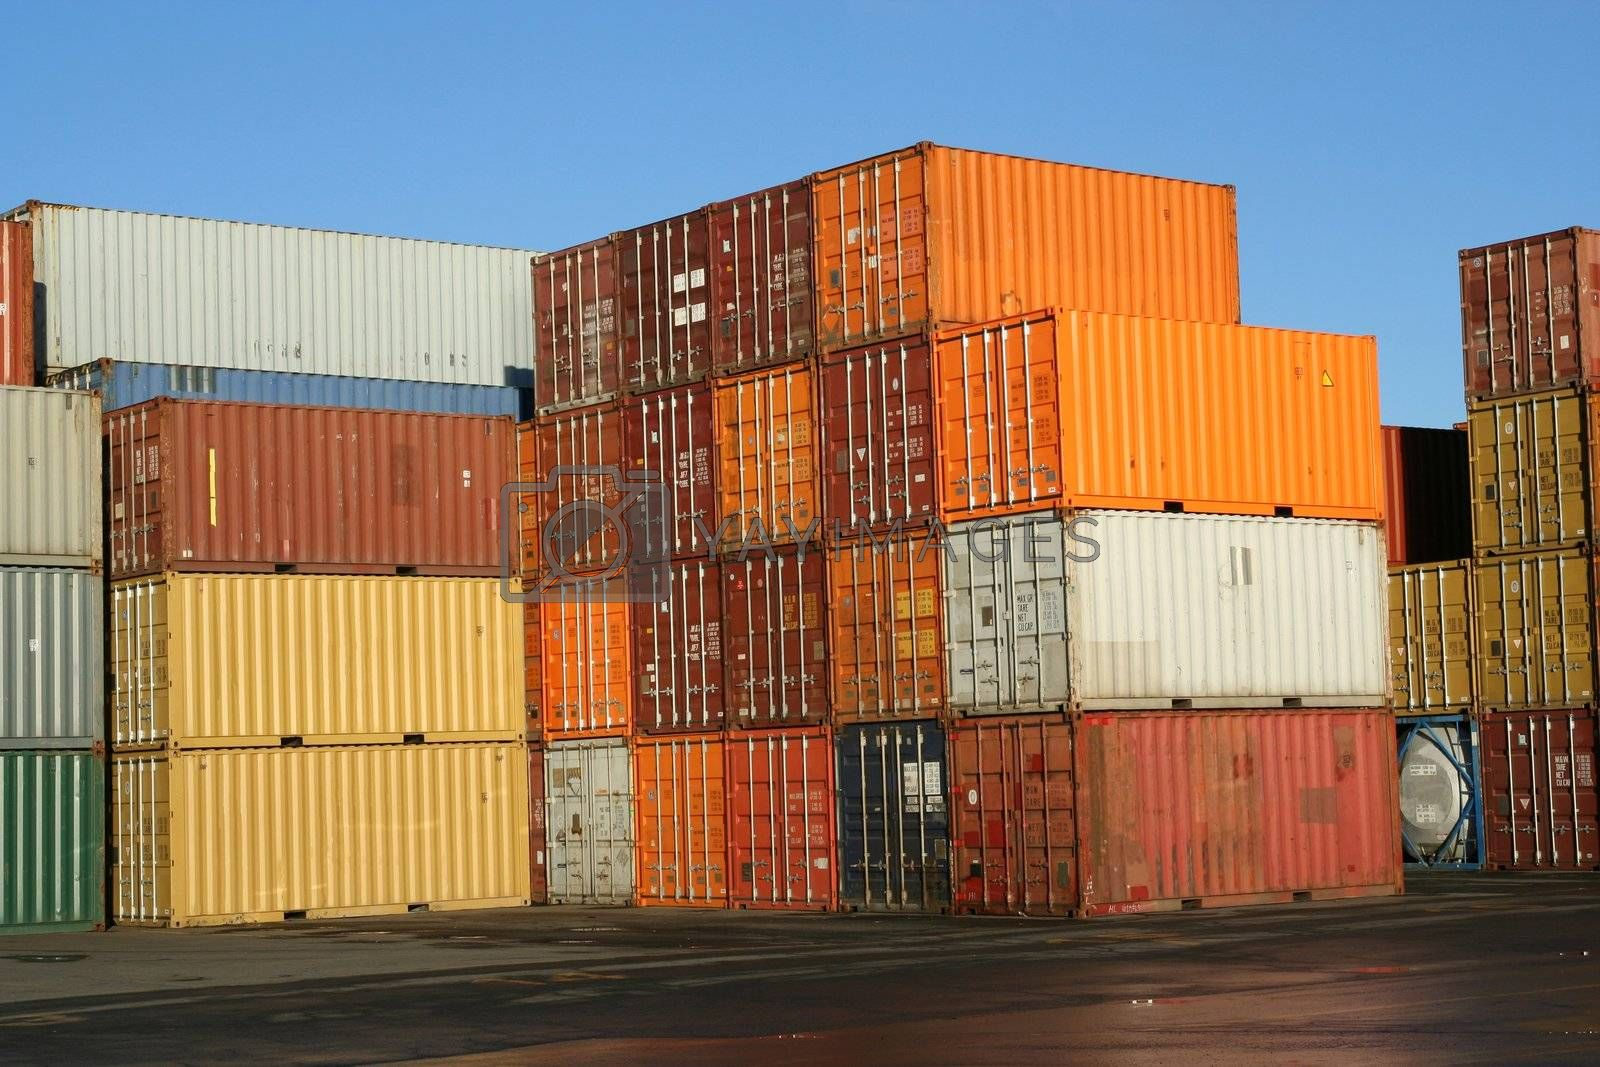 Containers in an intermodal yard 2 by le_cyclope